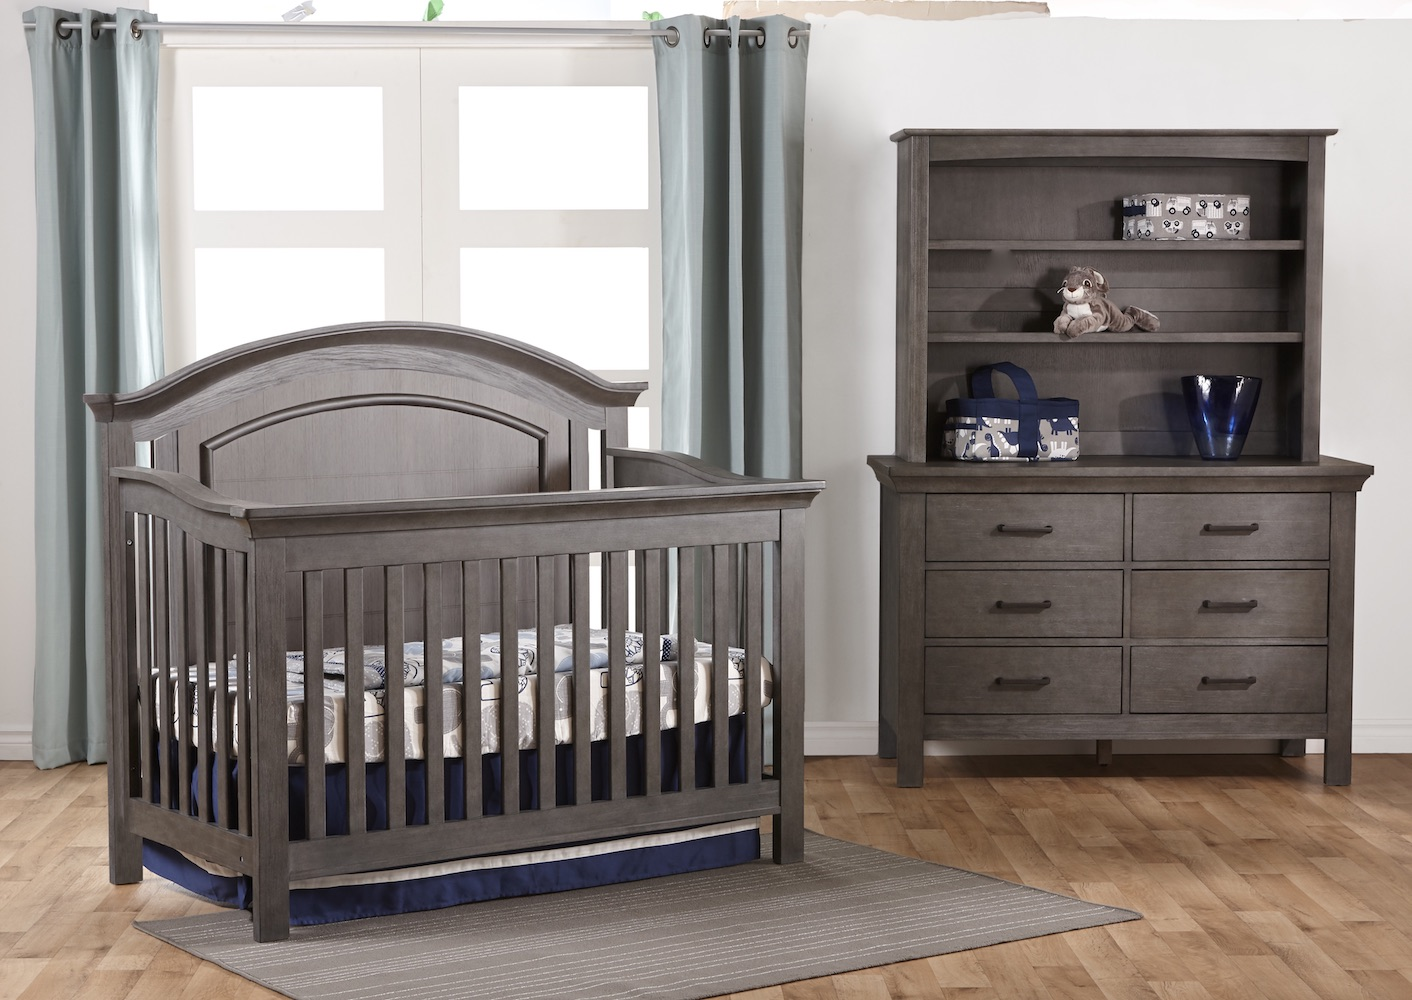 Pali Design Como Forever Crib + Dresser in Granite